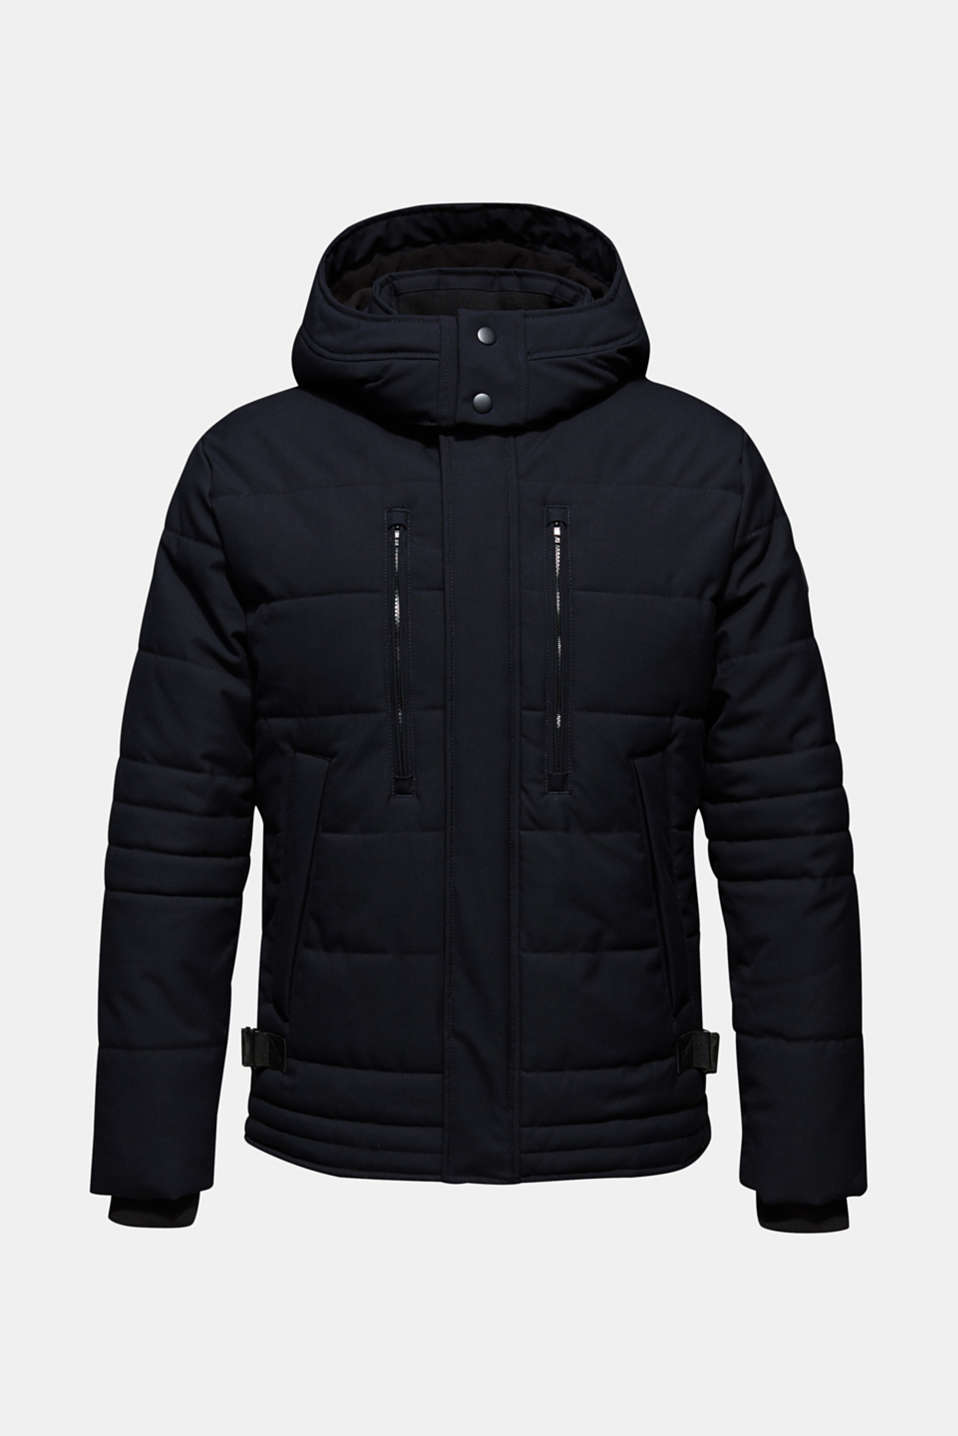 Padded quilted jacket with an adjustable hood, NAVY, detail image number 6